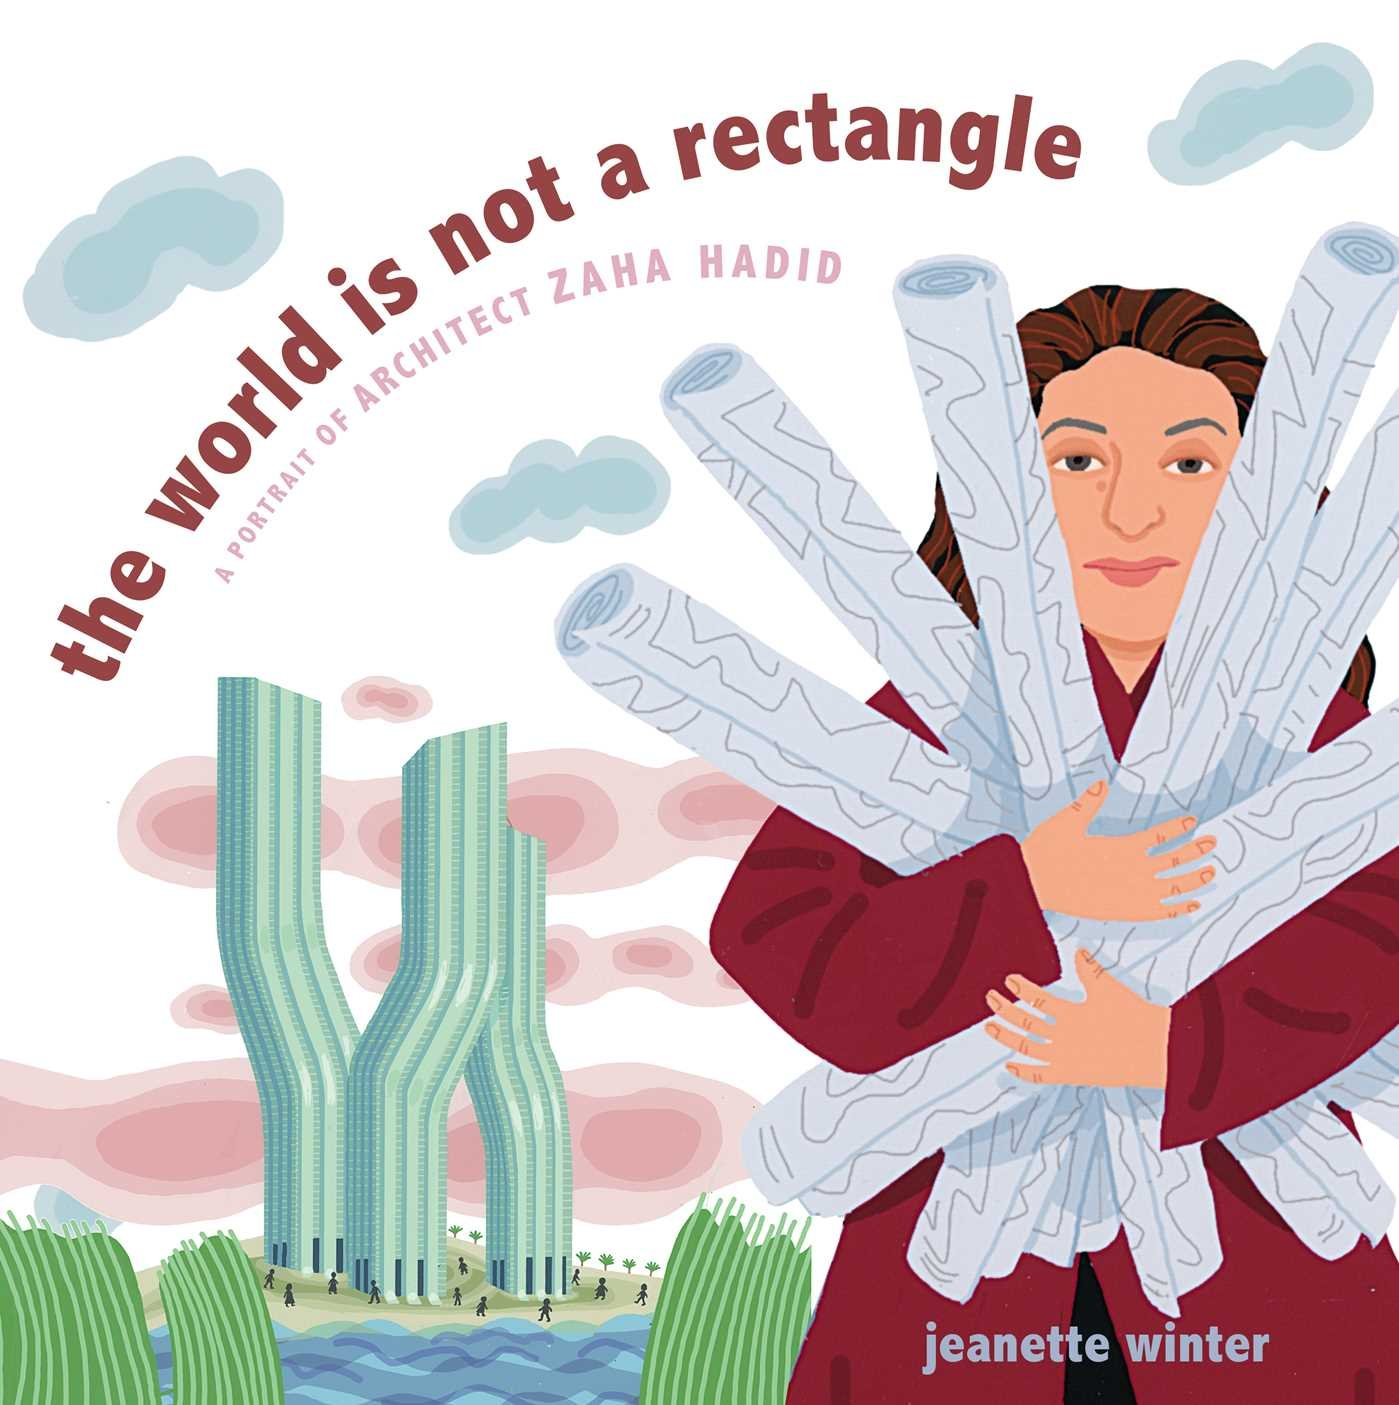 The World Is Not a Rectangle: A Portrait of Architect Zaha Hadid: Winter, Jeanette, Winter, Jeanette: 9781481446693: Amazon.com: Books